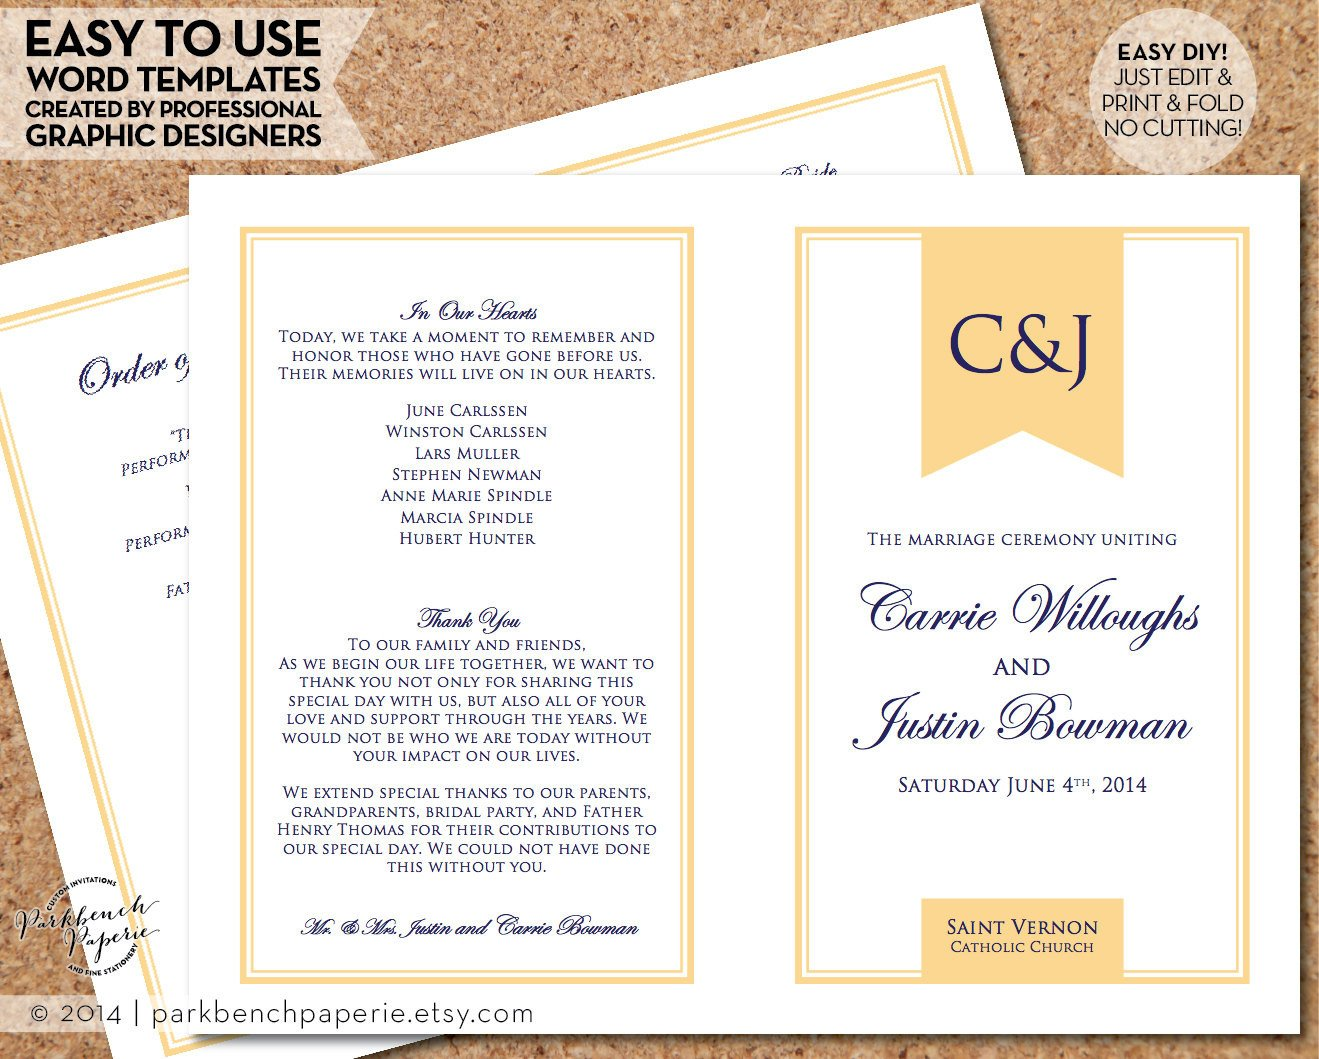 Simple Wedding Program Template Wedding Program Template Simple Banner butter Diy